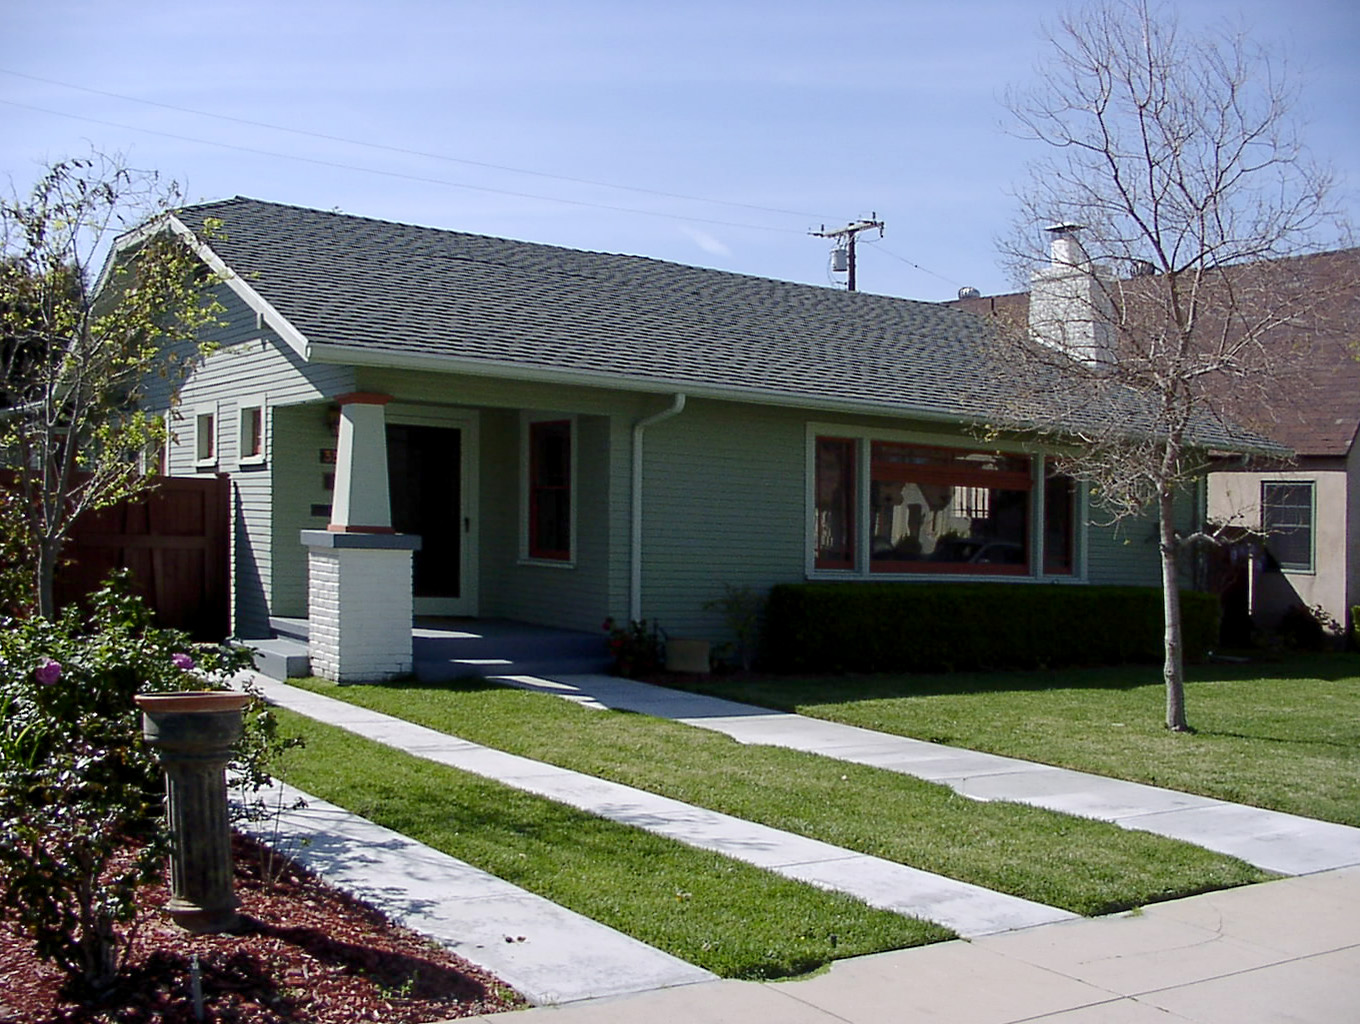 House with a walkway and a driveway that has grass growing in the middle of the driveway